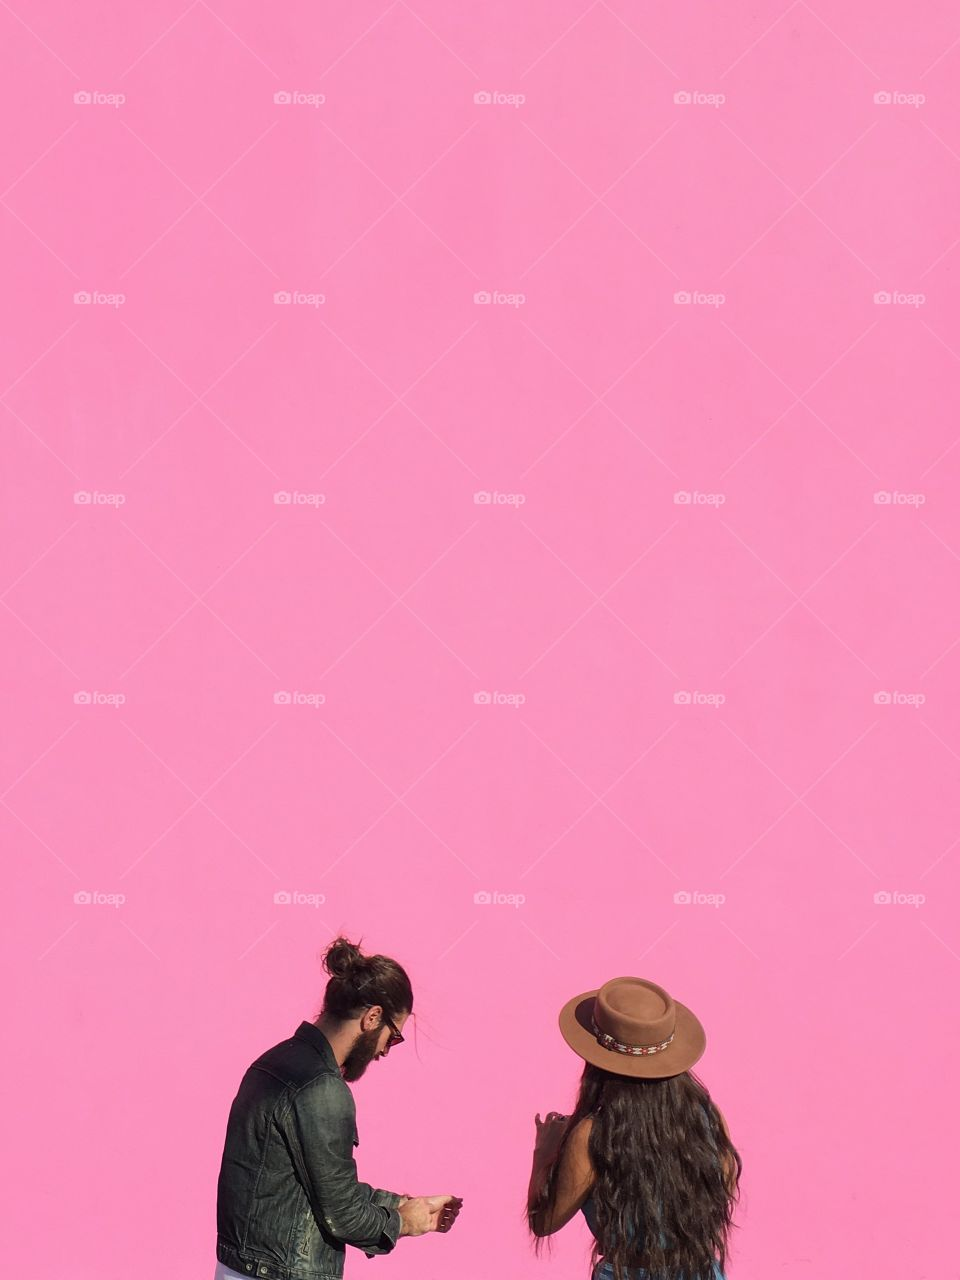 Two people and a pink wall.